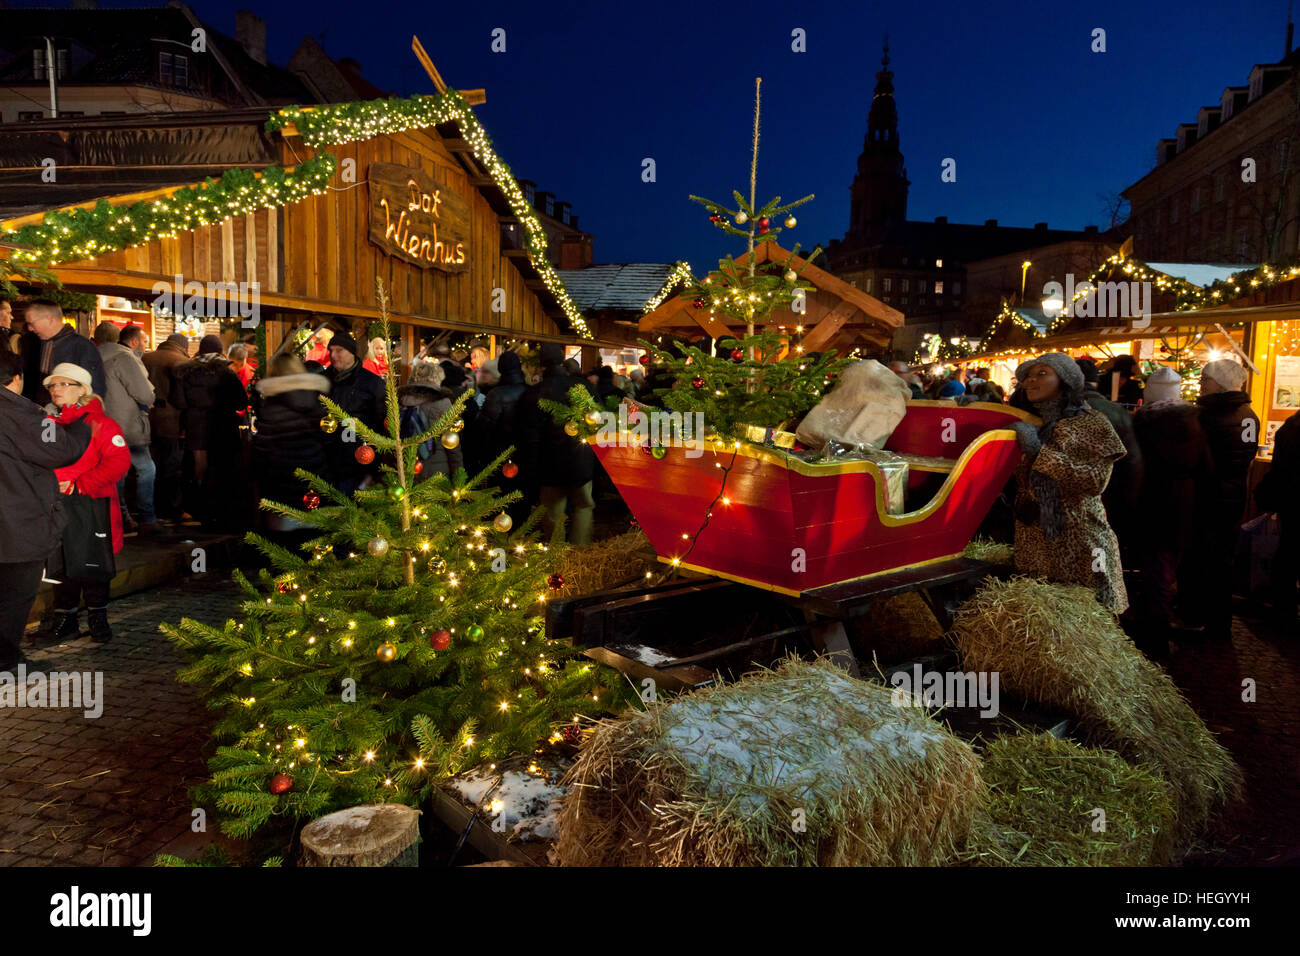 Santa Claus' sleigh and Christmas trees in the evening at the Christmas market on Højbro Plads, Hoejbro - Stock Image